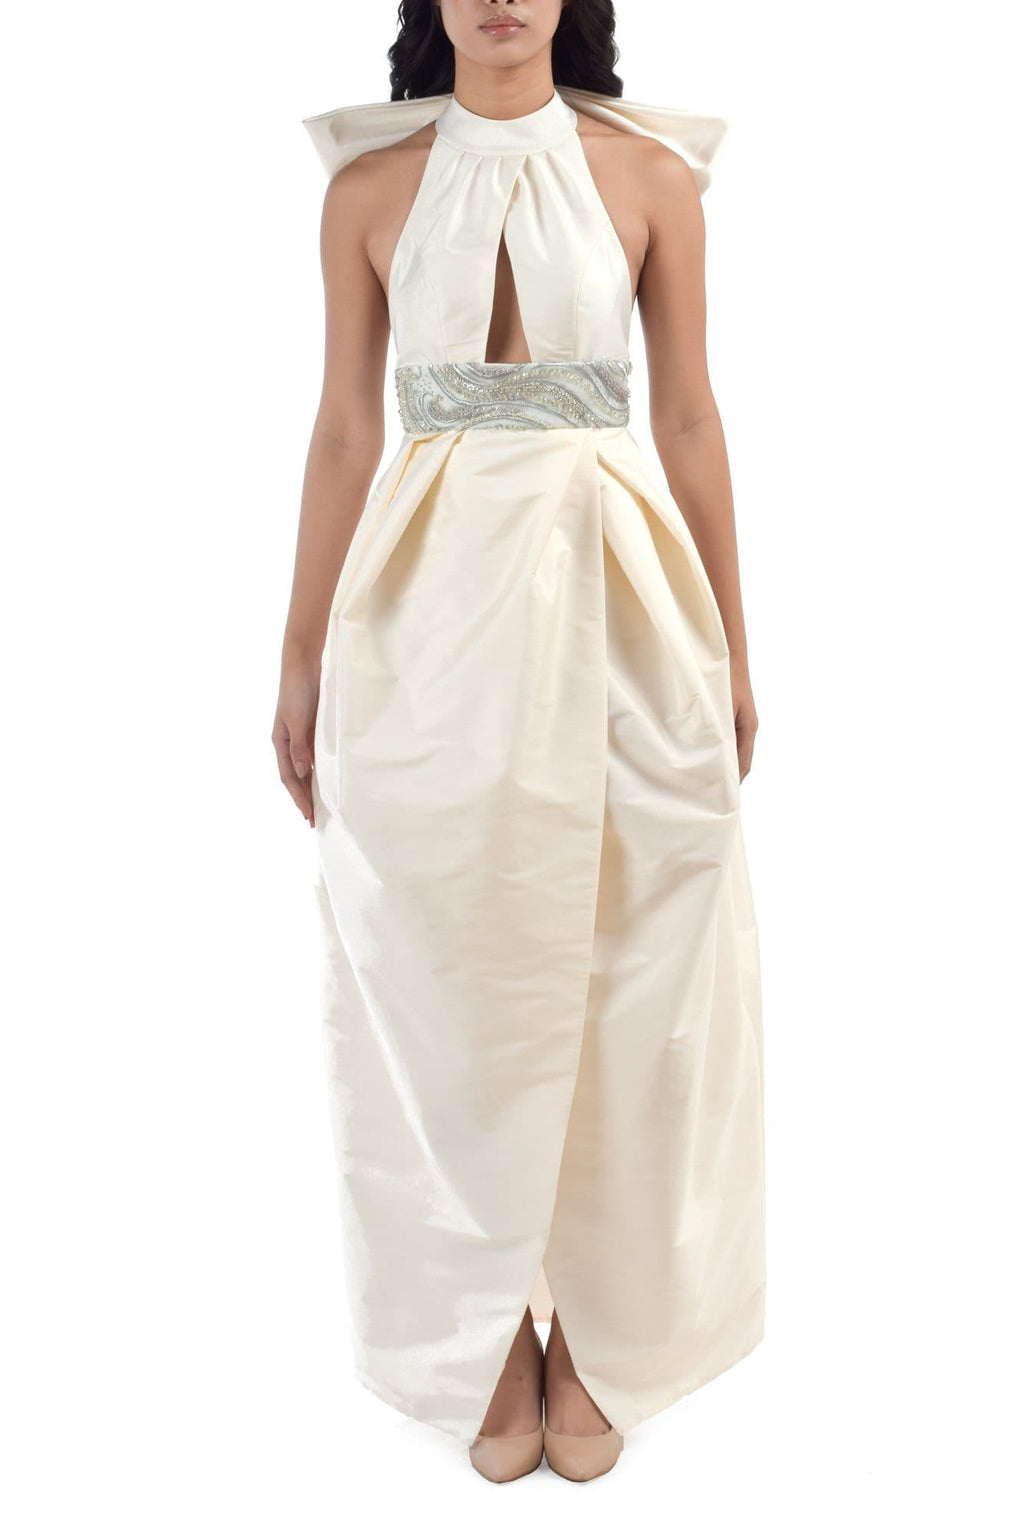 Bowed Backless Porcelain Midi Dress - BYTRIBUTE